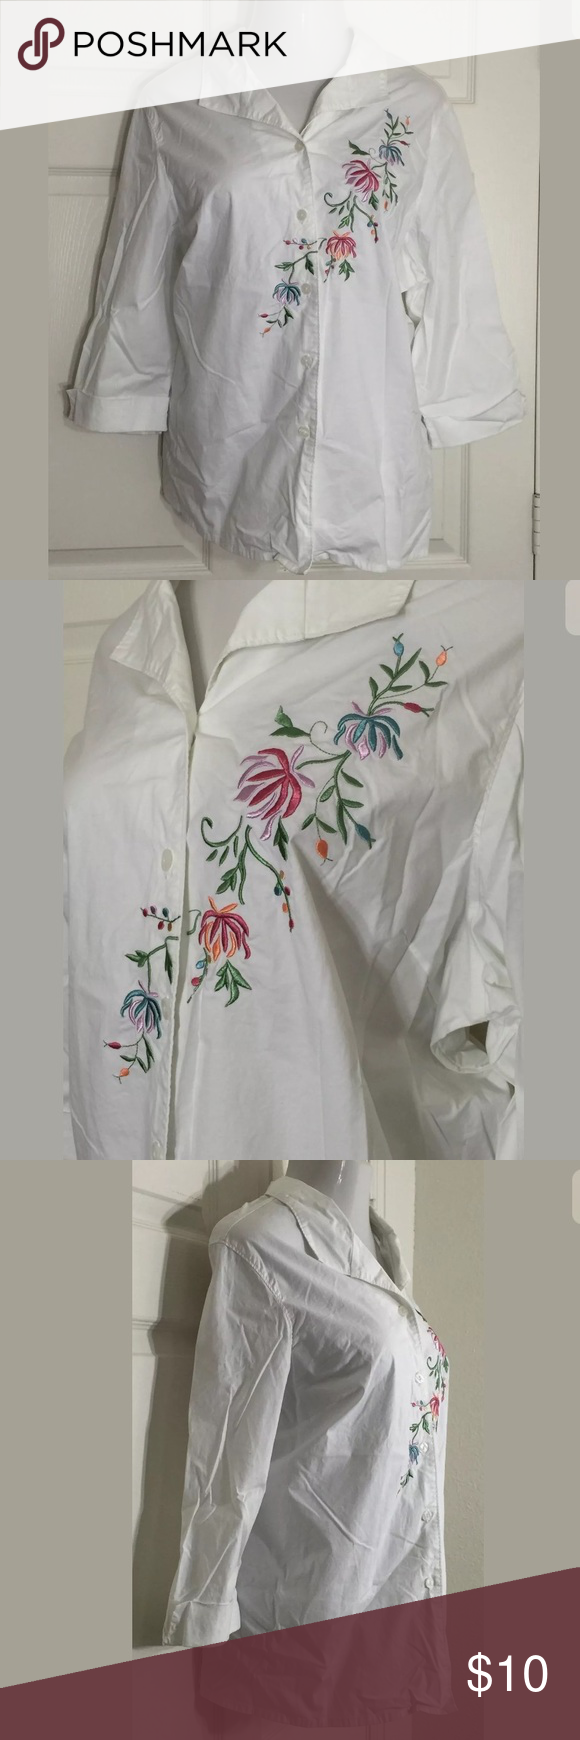 """Blair Floral Blouse Really pretty white with floral embroidered, button front blouse. Has 3/4 sleeves. Bust: 54""""; Length in the back from the shoulder: 29"""". 98% Cotton, 2% Spandex. Machine washable. Smoke free home. Thanks for shopping my closet 🌺! Blaire Tops Button Down Shirts"""